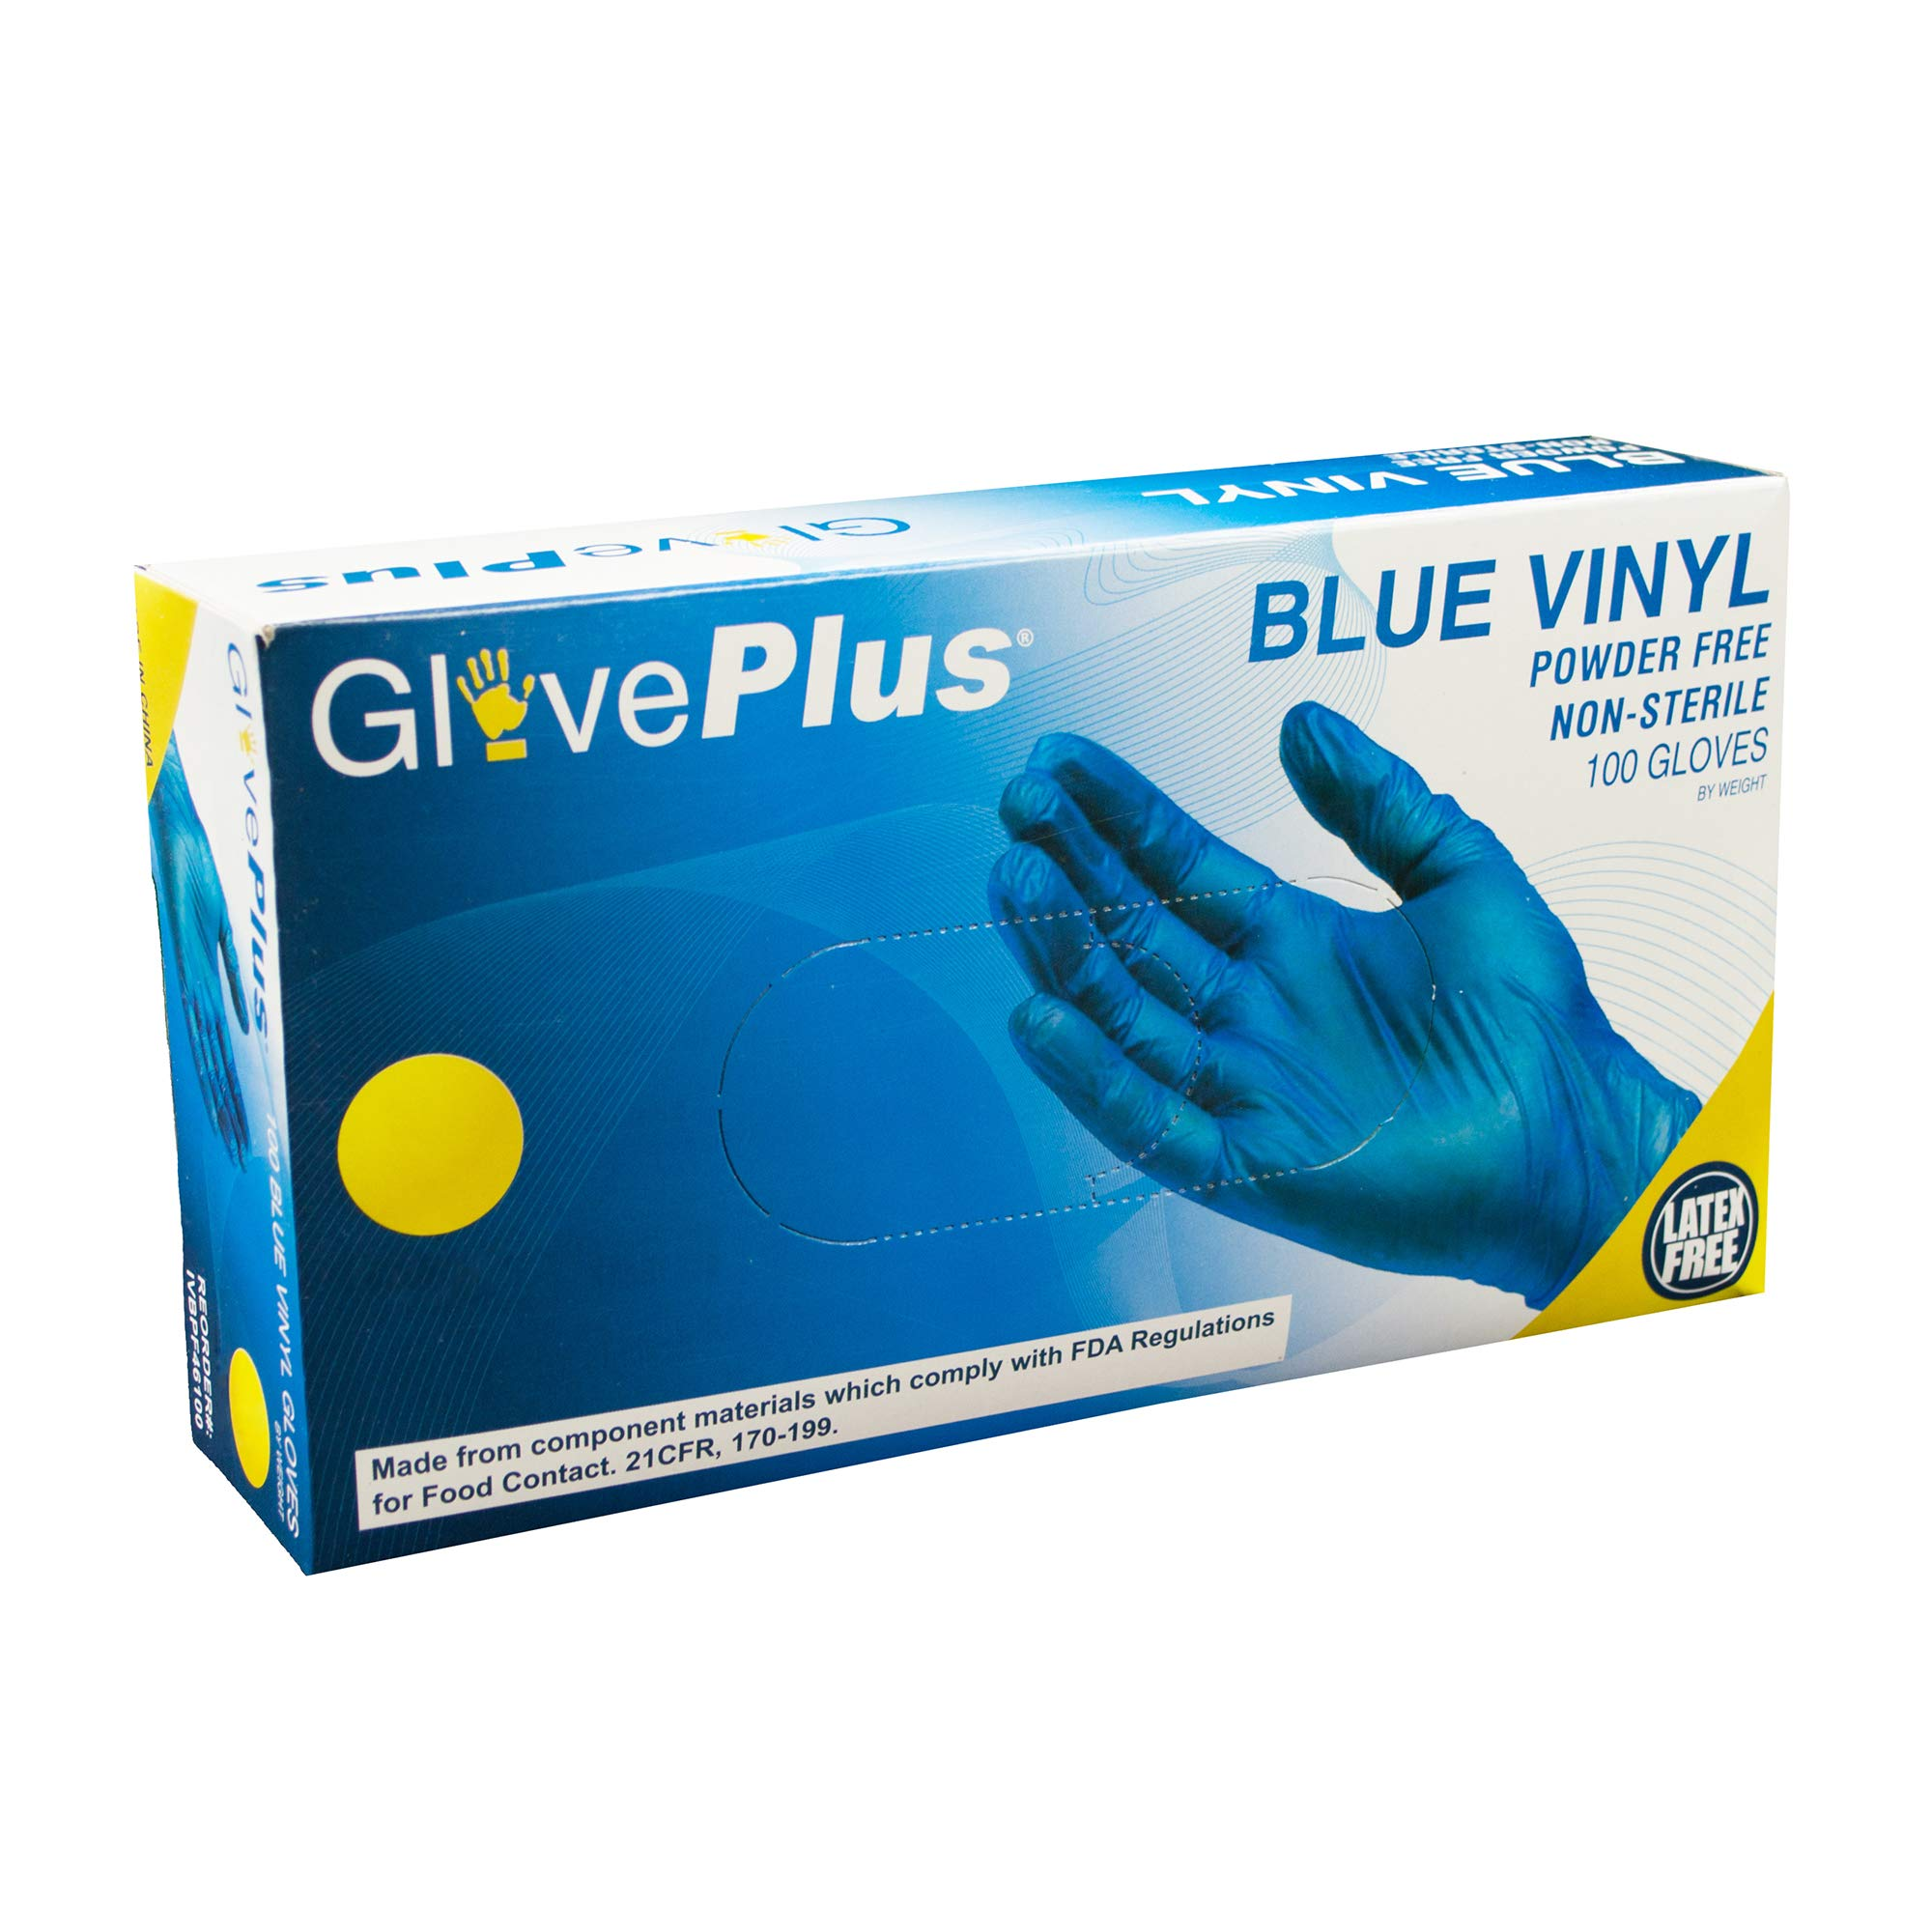 AMMEX Vinyl Disposable Gloves - Powder-Free, Food Safe, Non-Sterile, 4 mil Thick, Large, Blue (Case of 1000) by GLOVEPLUS (Image #6)